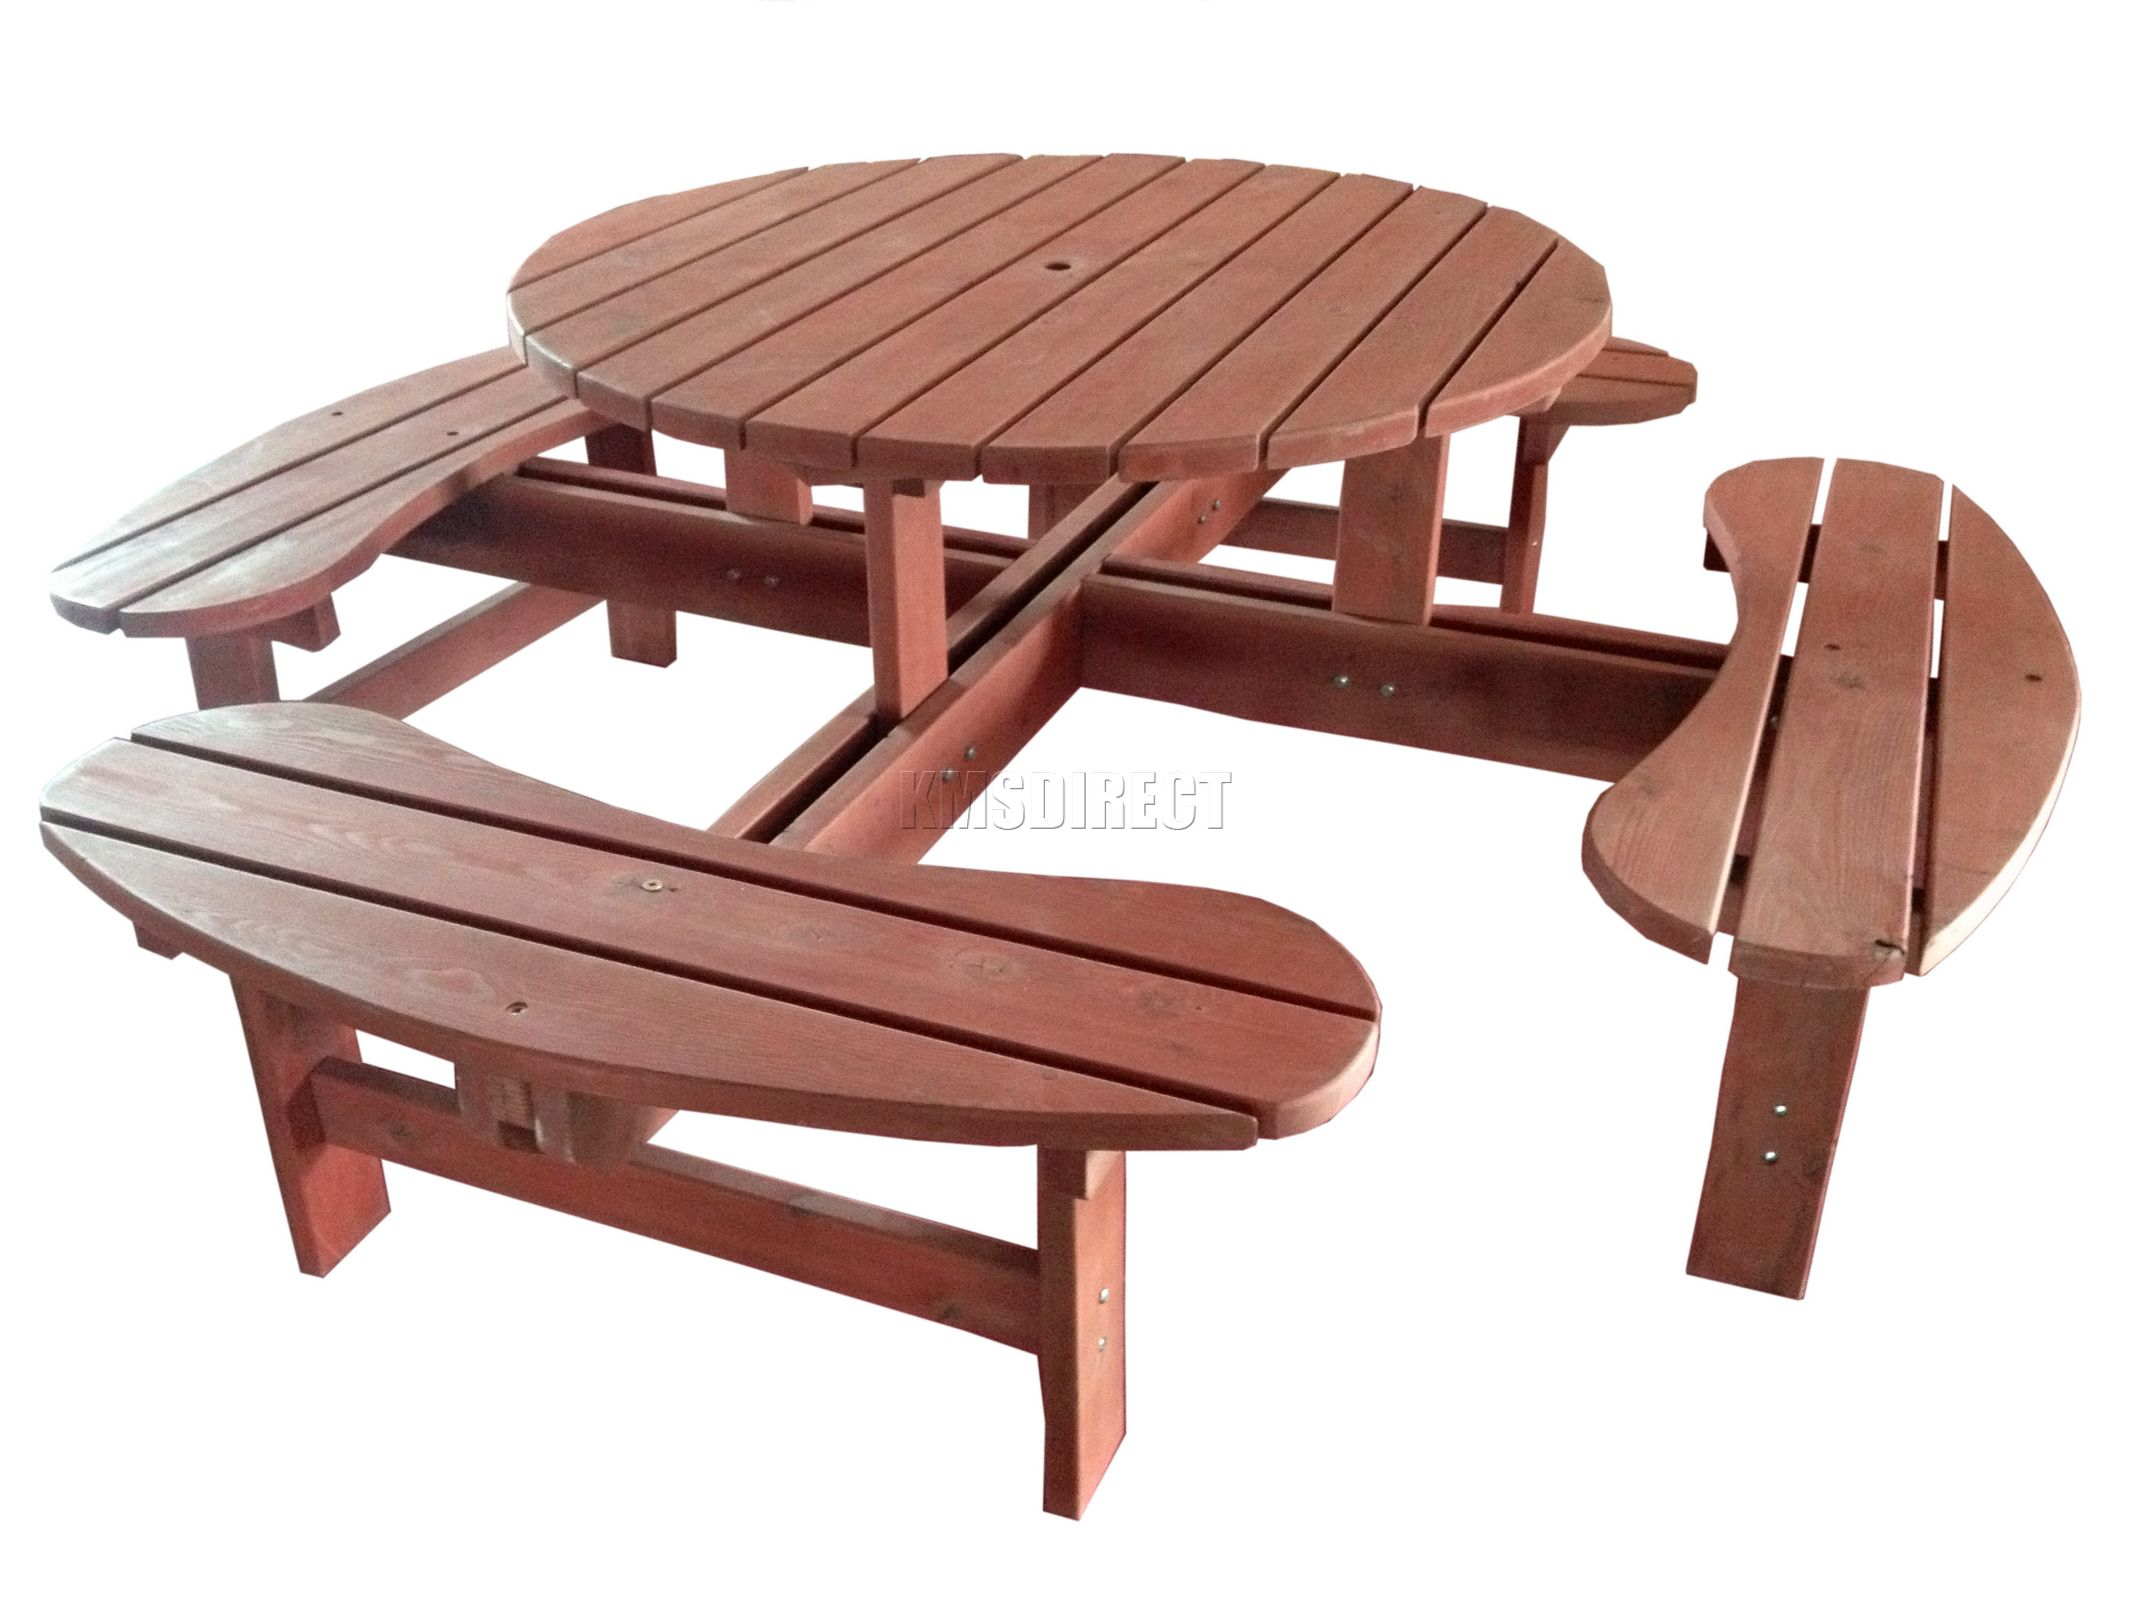 New 8 seater wooden pub bench round picnic table furniture - Table picnic bois enfant ...